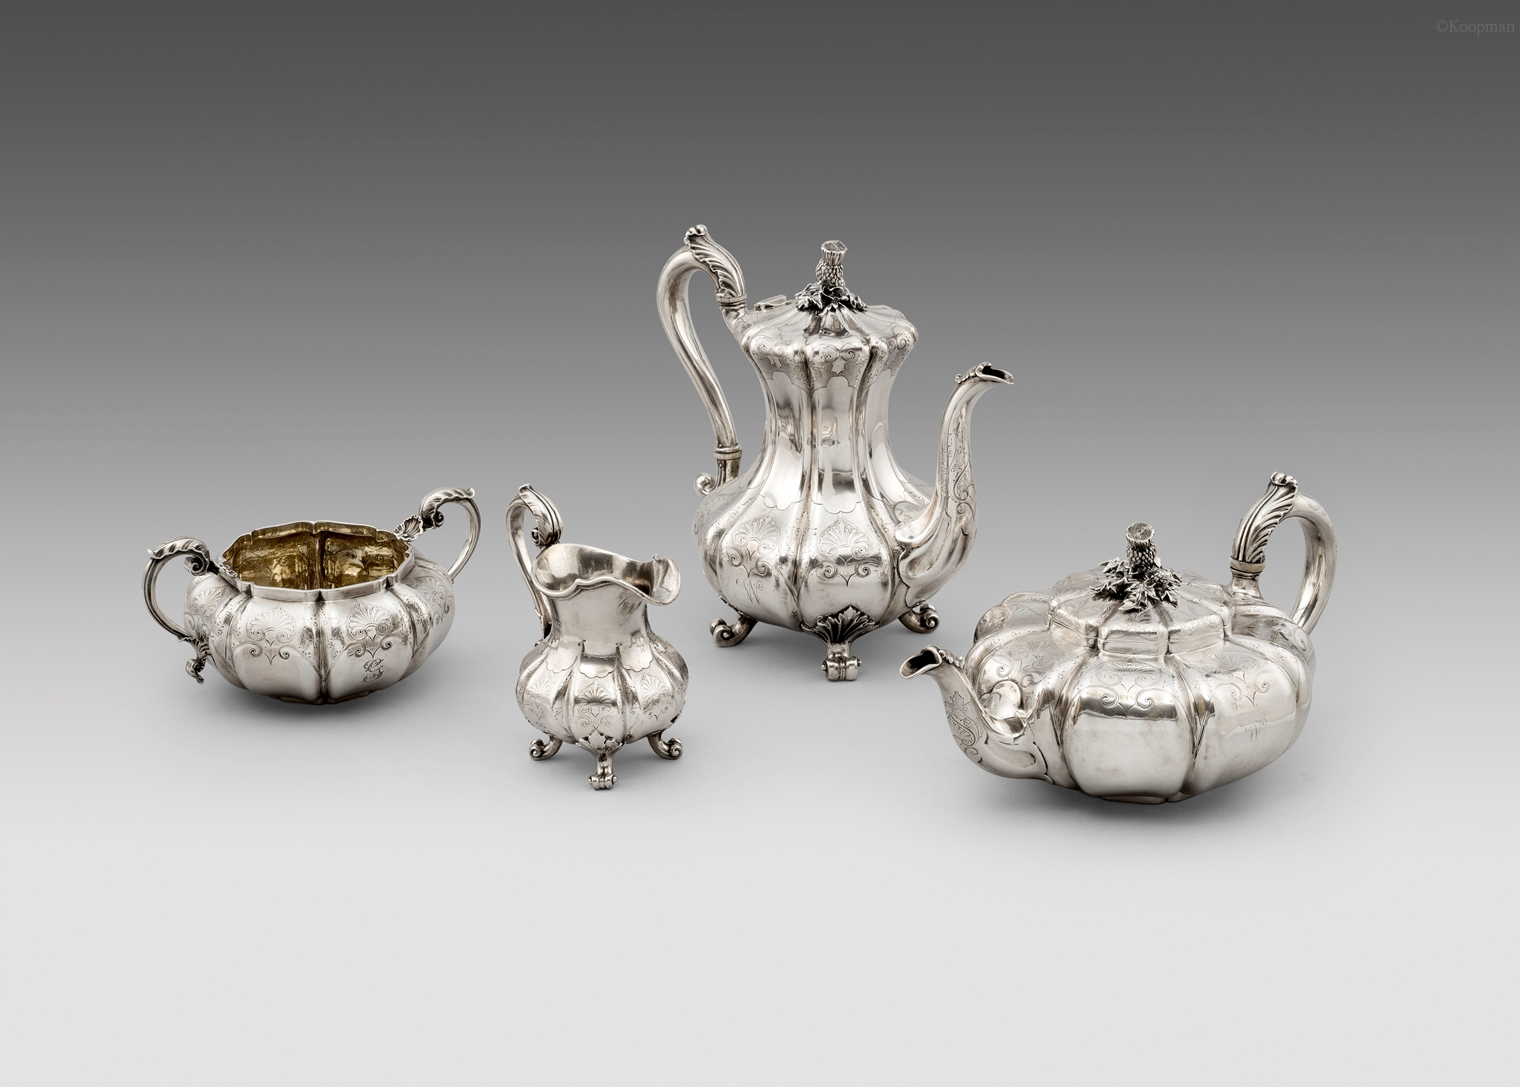 A Paul Storr Tea and Coffee Set